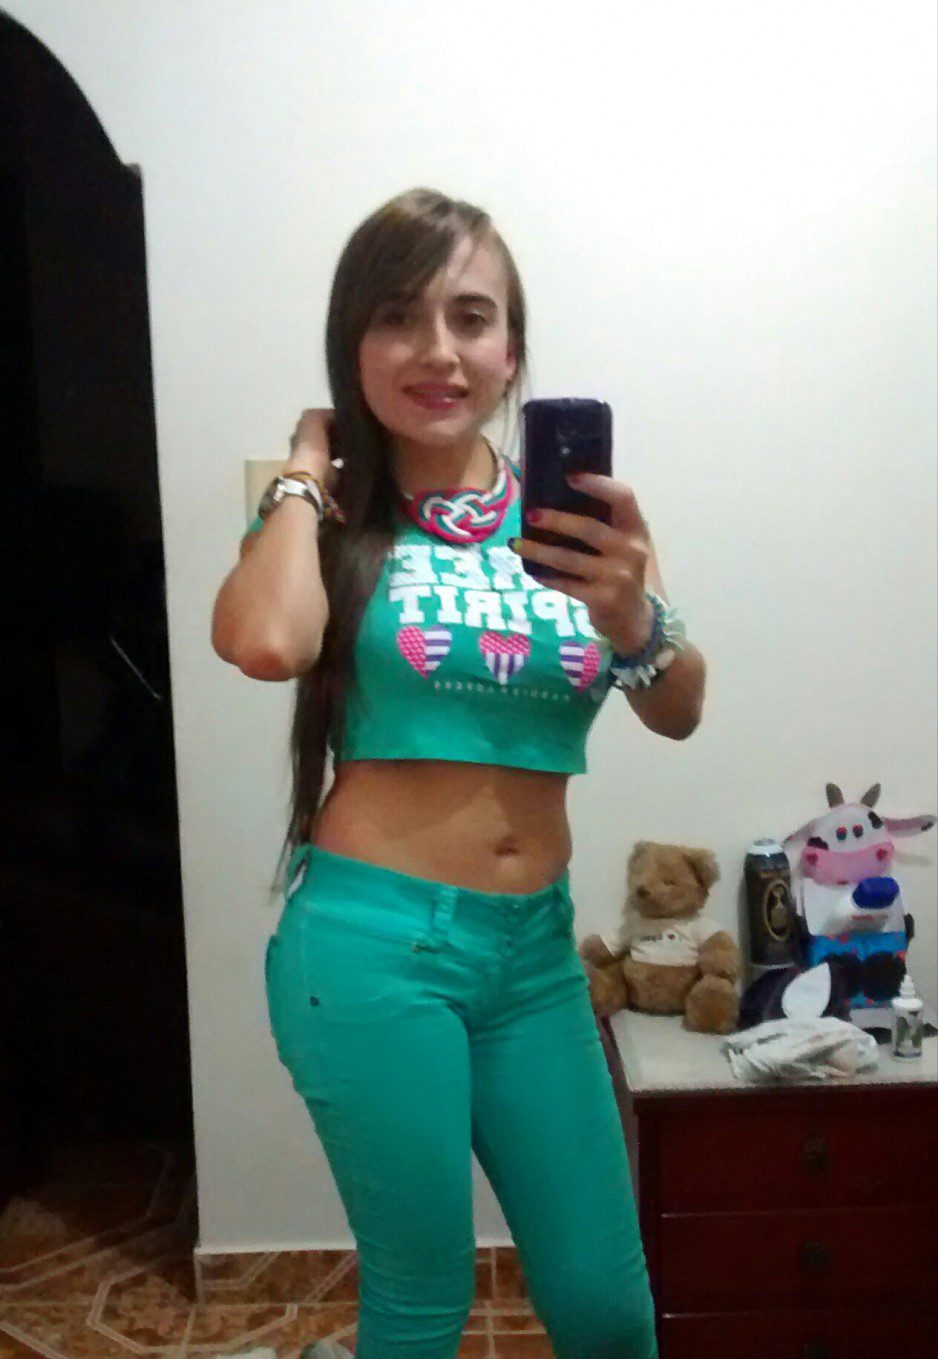 manizales single christian girls International dating often they do not have a good contact number and the girls are no longer available manizales is a relatively small city and we know many of.